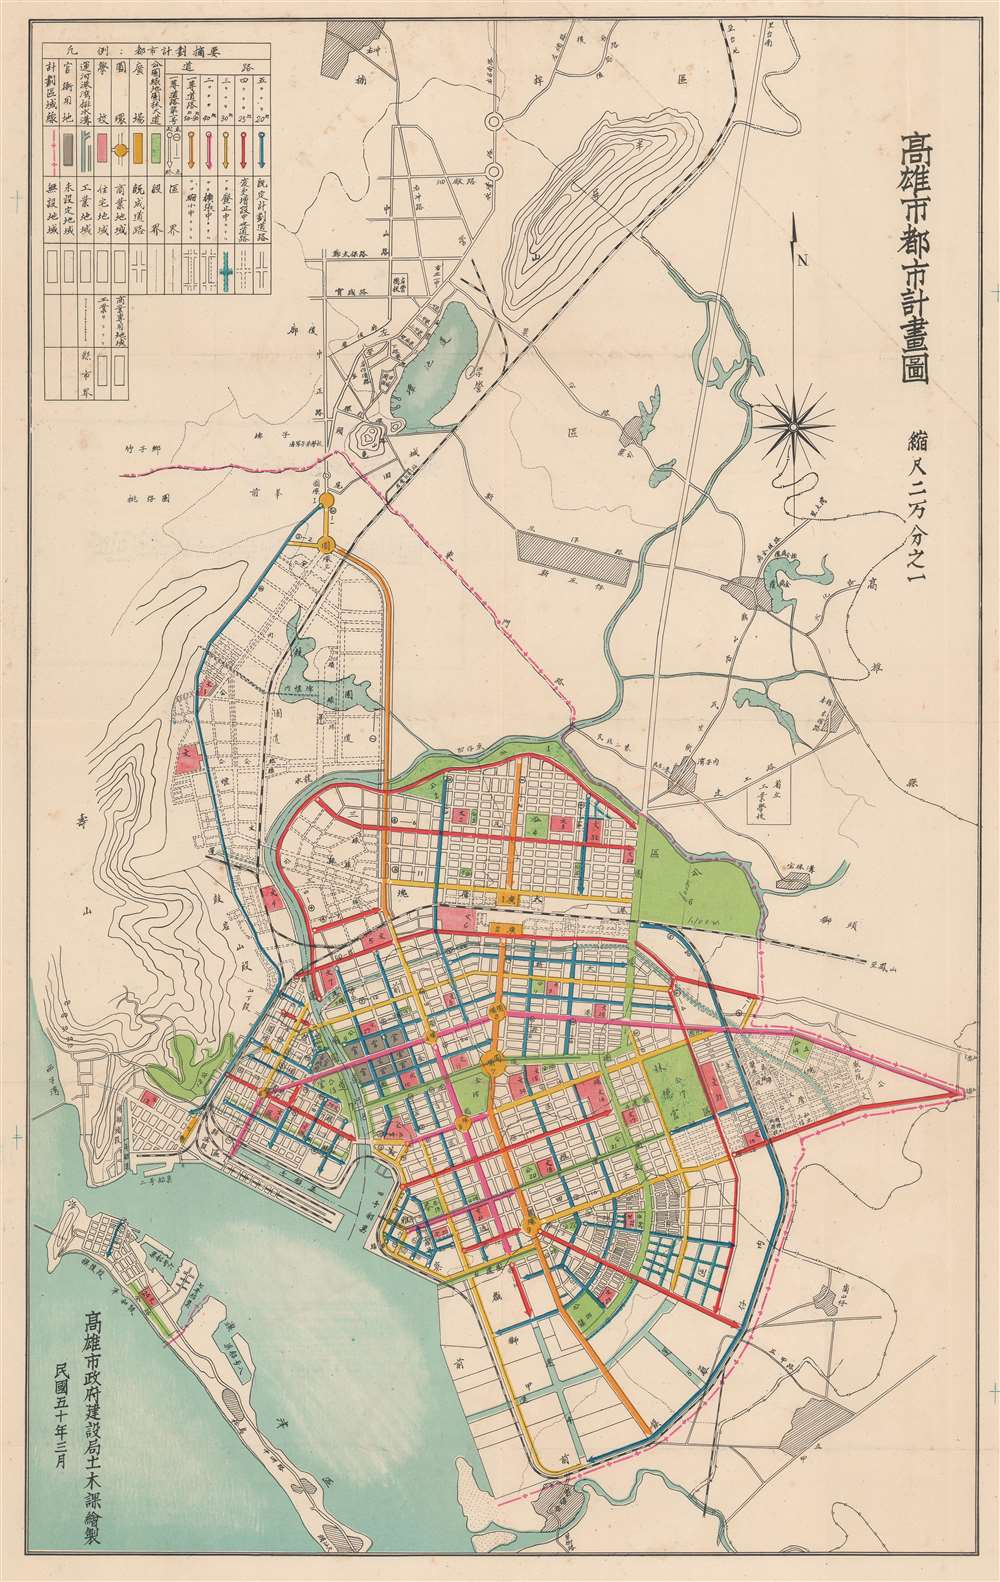 Map of Existing Roads in Kaohsiung City. / Kaohsiung City Planning Map. / Geographical Map of Kaohsiung City Zones.  /  高雄市都市既成道路圖 / 高雄市都市計畫圖 / 高雄市都市計書地域圖 - Alternate View 2